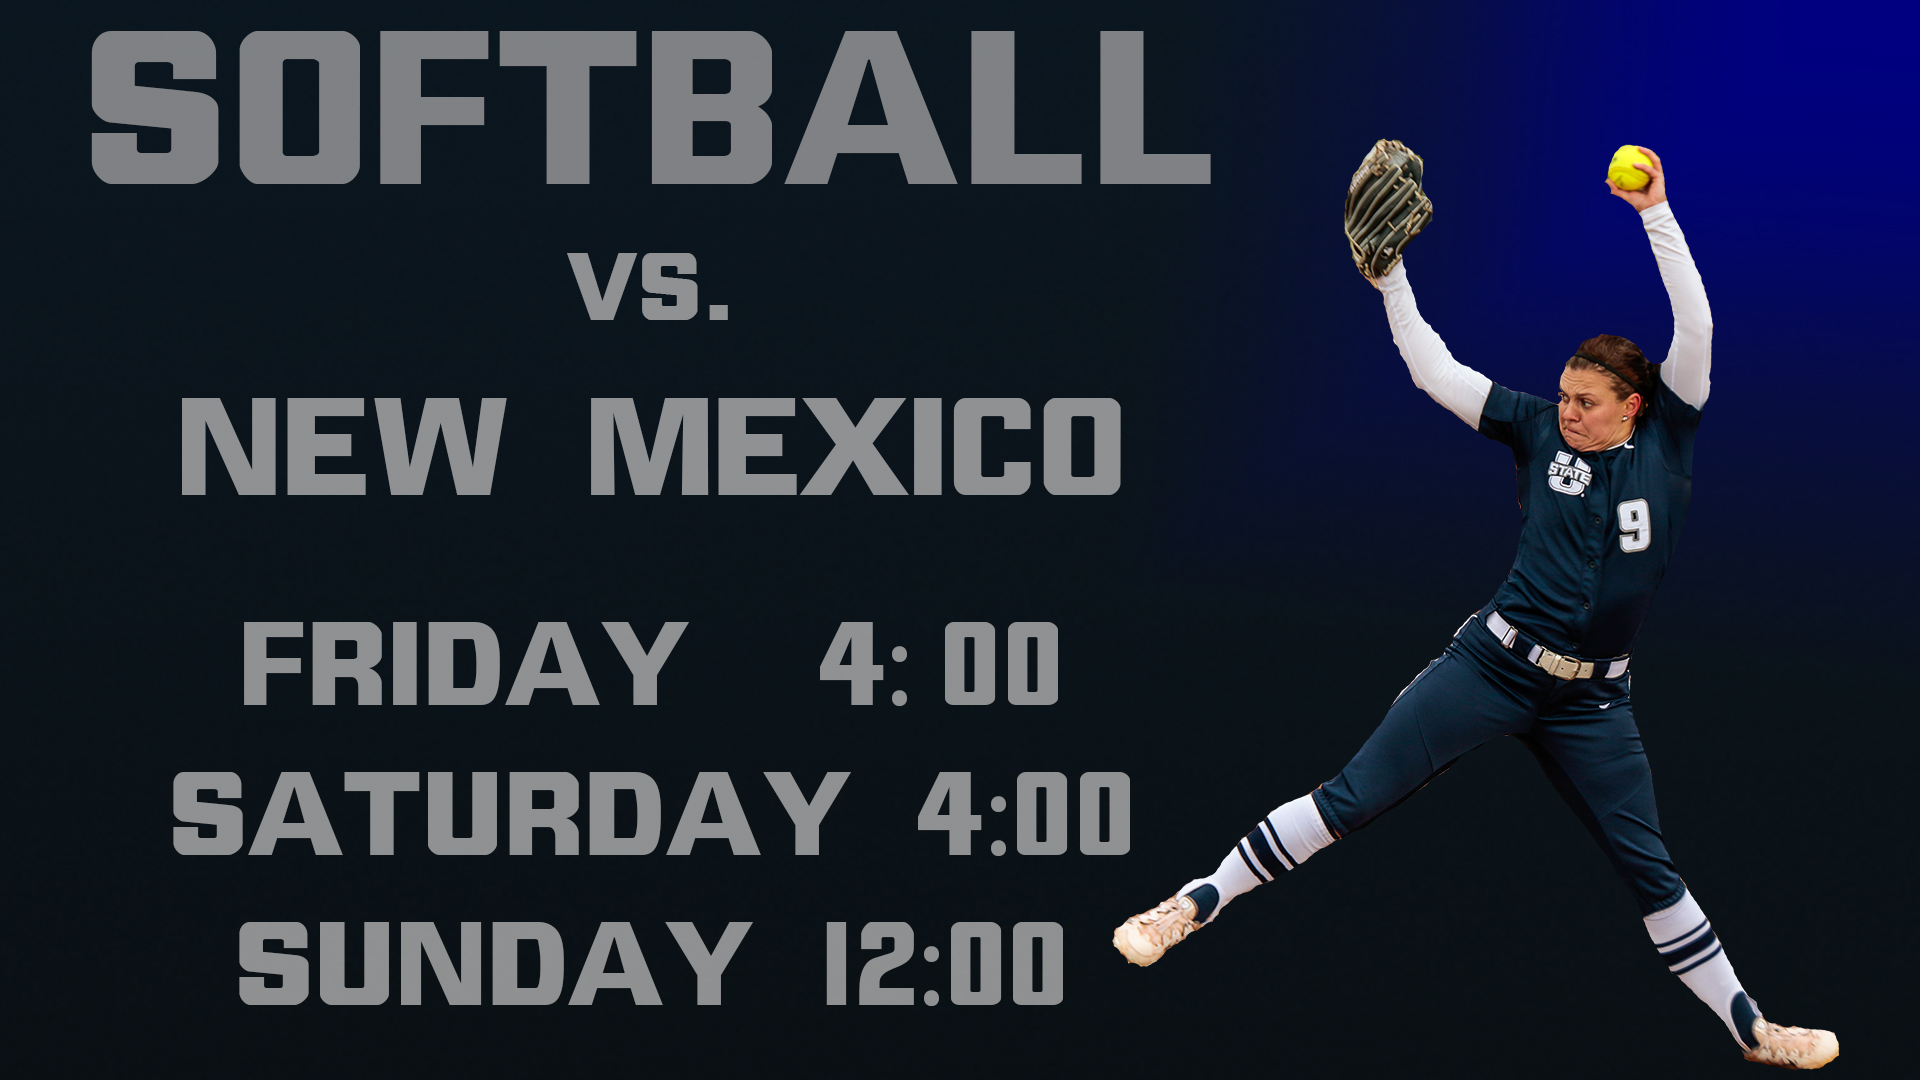 Women's Softball games